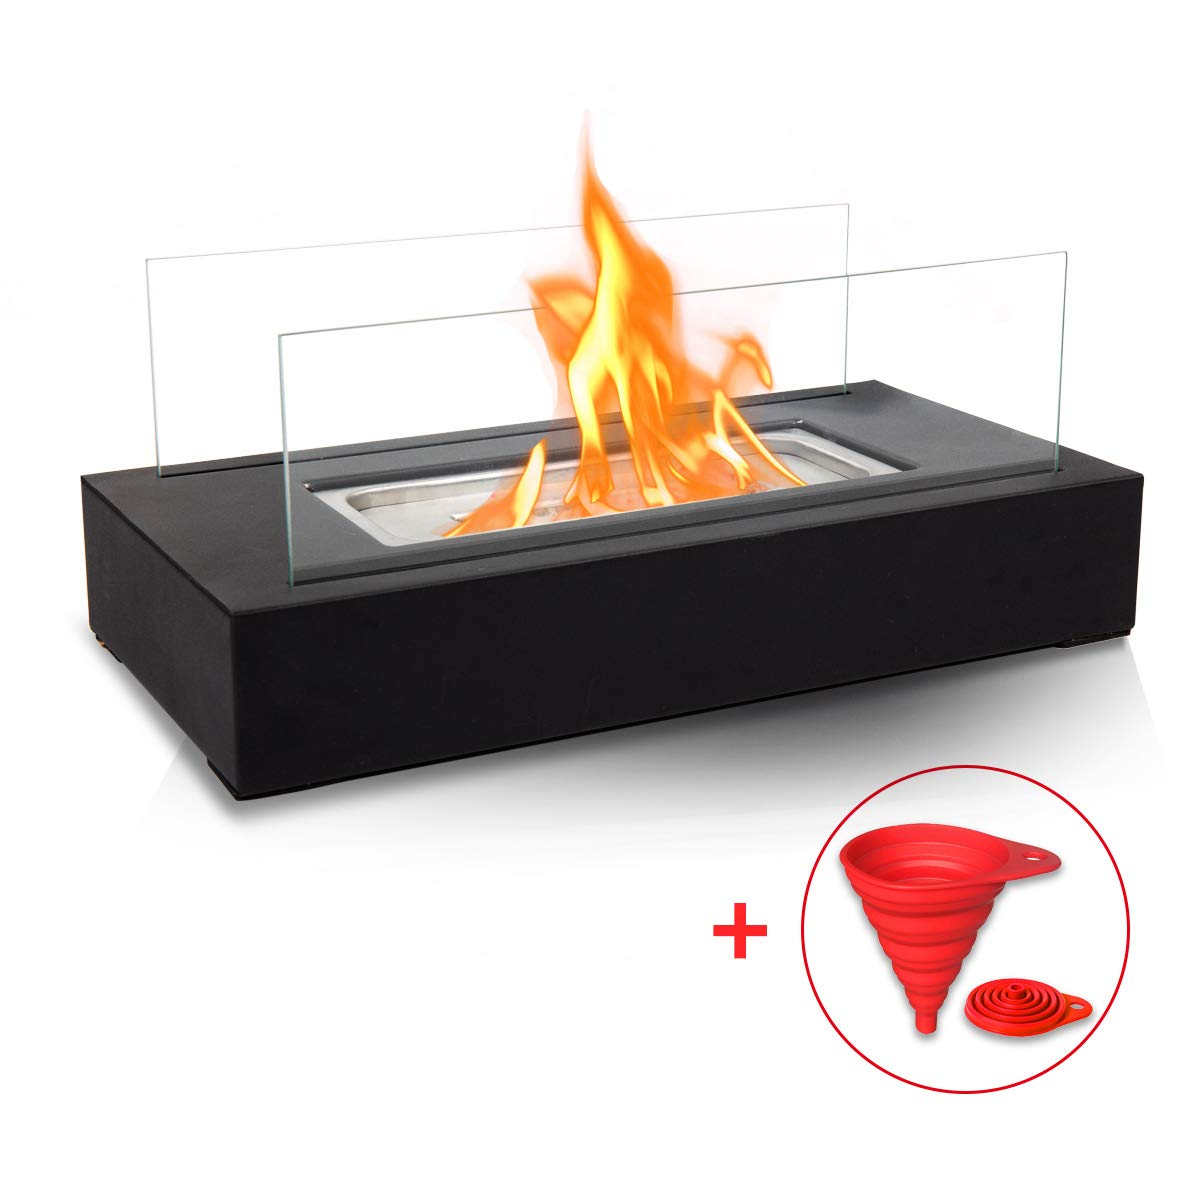 BRIAN & DANY Ventless Tabletop Portable Fire Bowl Pot Bio Ethanol Fireplace Indoor Outdoor Fire Pit in Black w/Fire Killer and Funnel by BRIAN & DANY